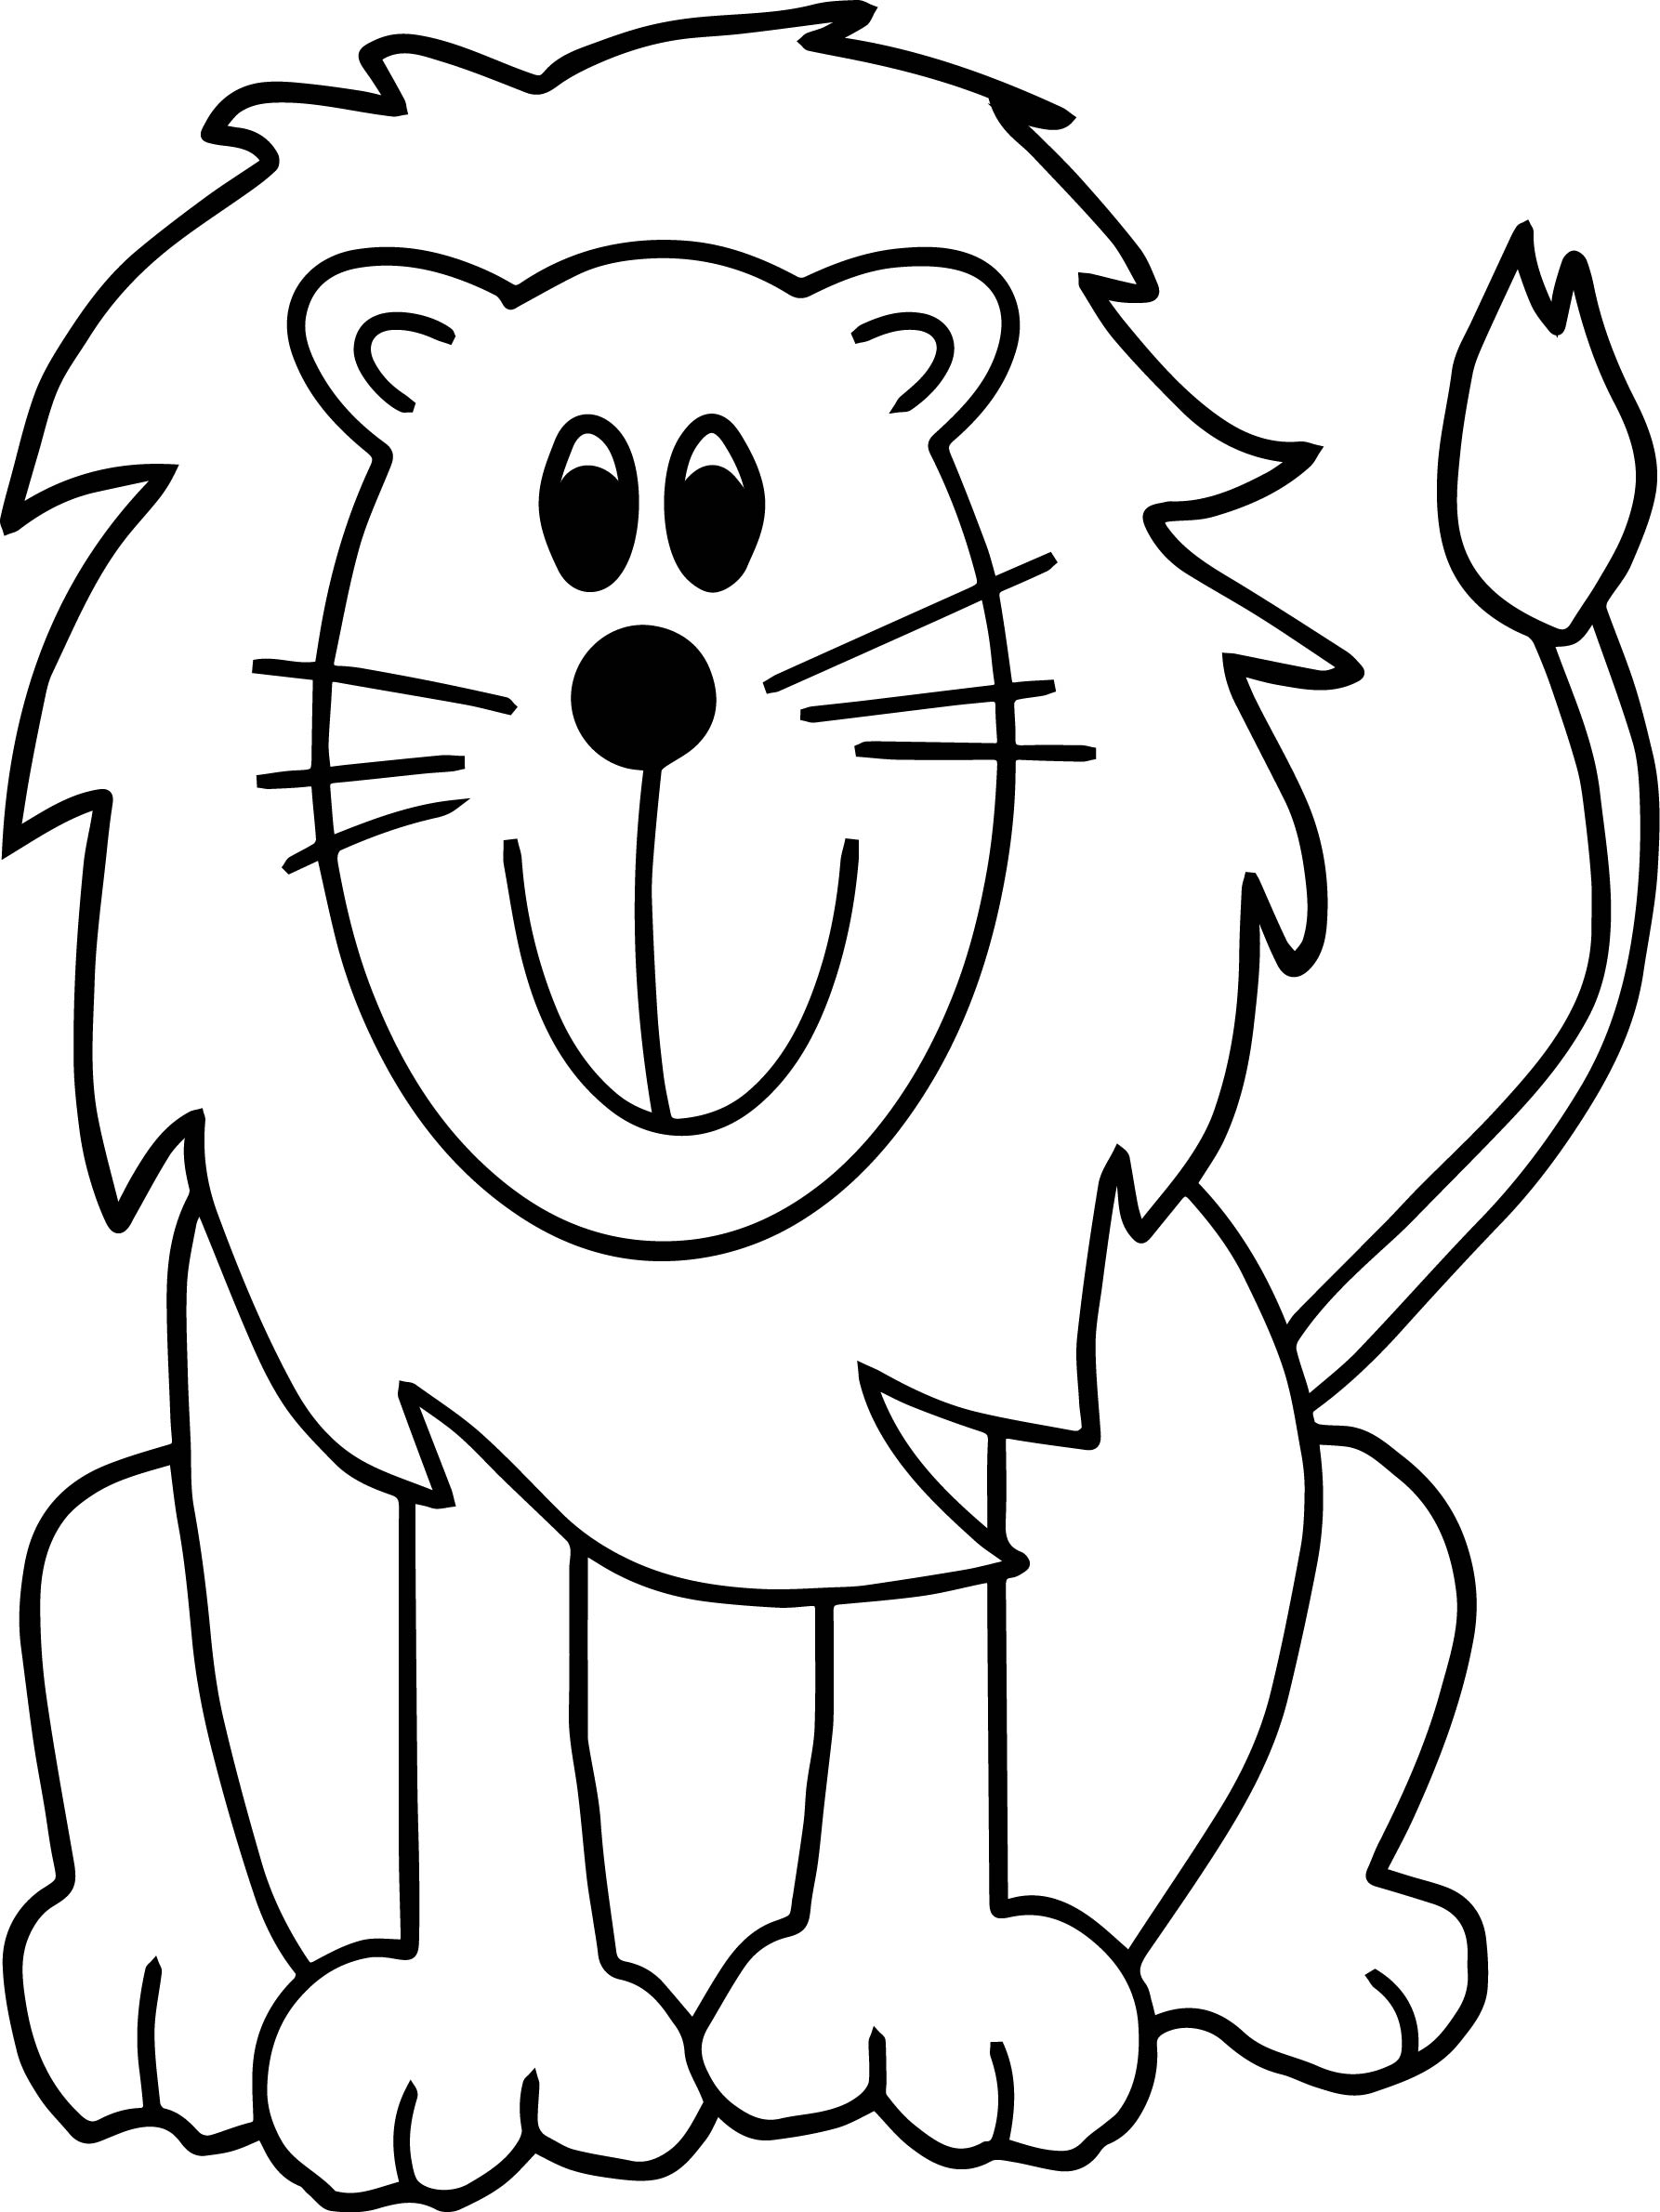 zoo coloring picture zoo printable coloring pages from printable zoo coloring coloring picture zoo